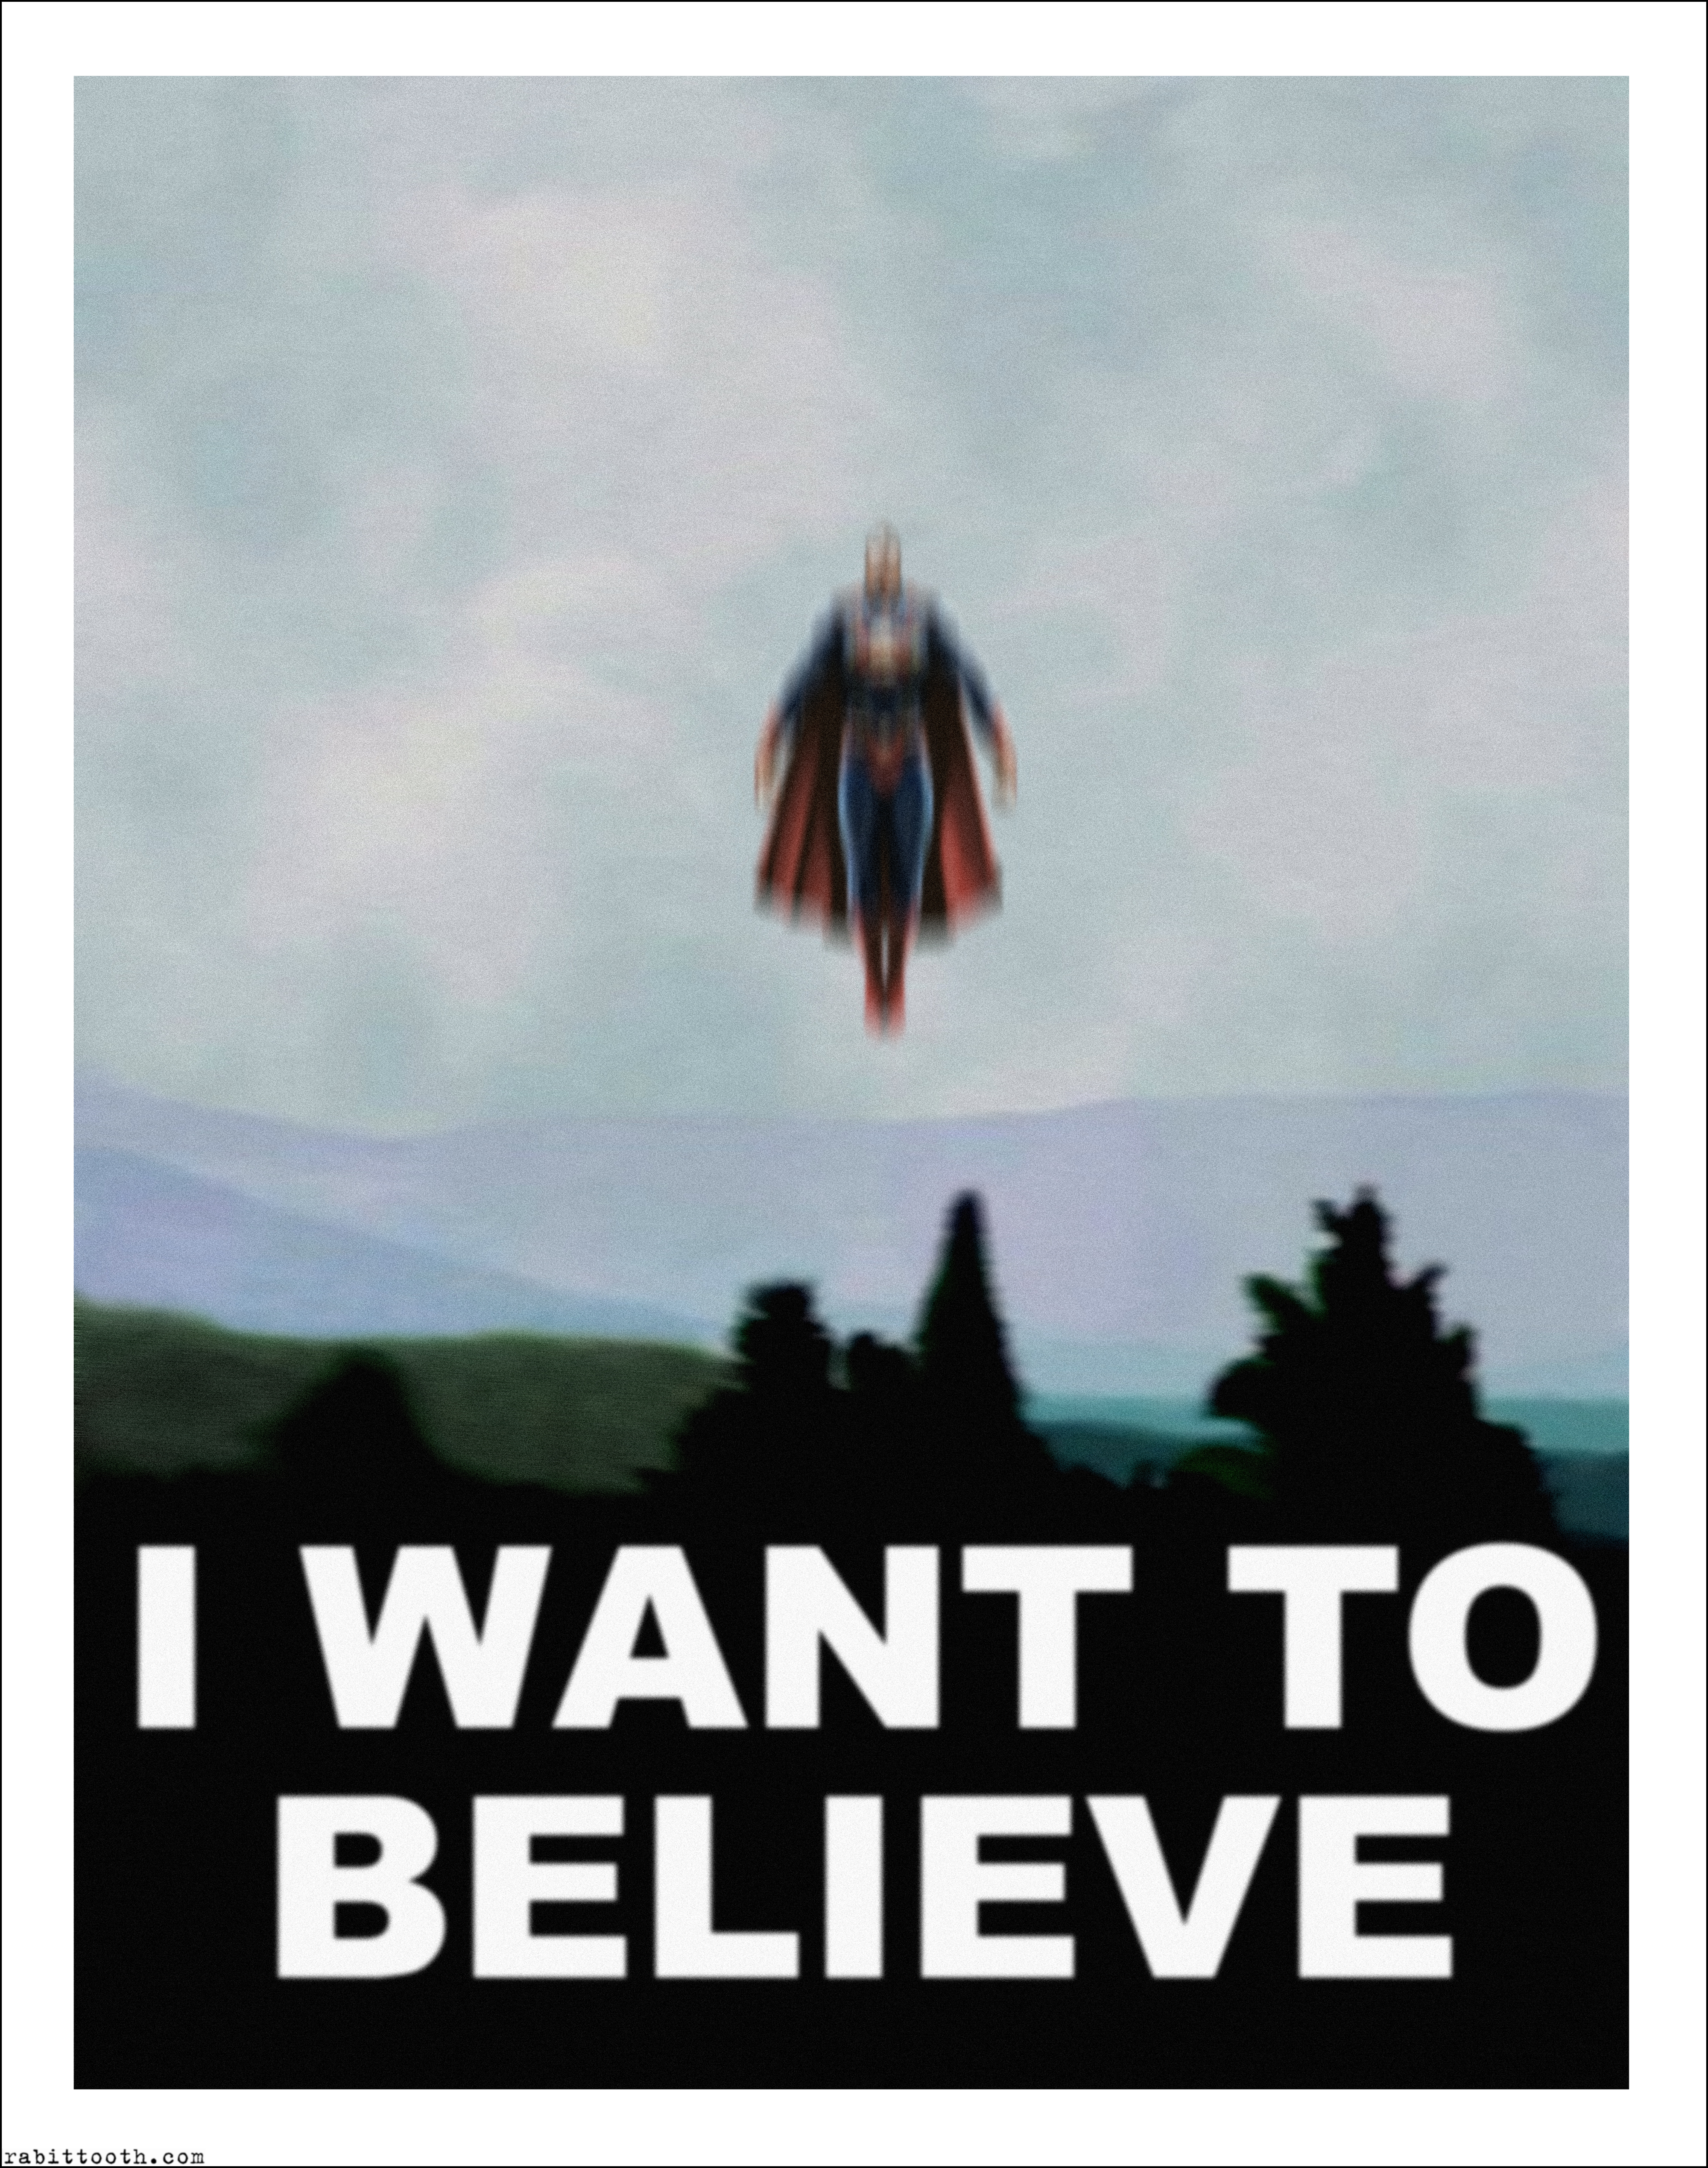 Superman X Files I Want To Believe Poster Mashup By Rabittooth